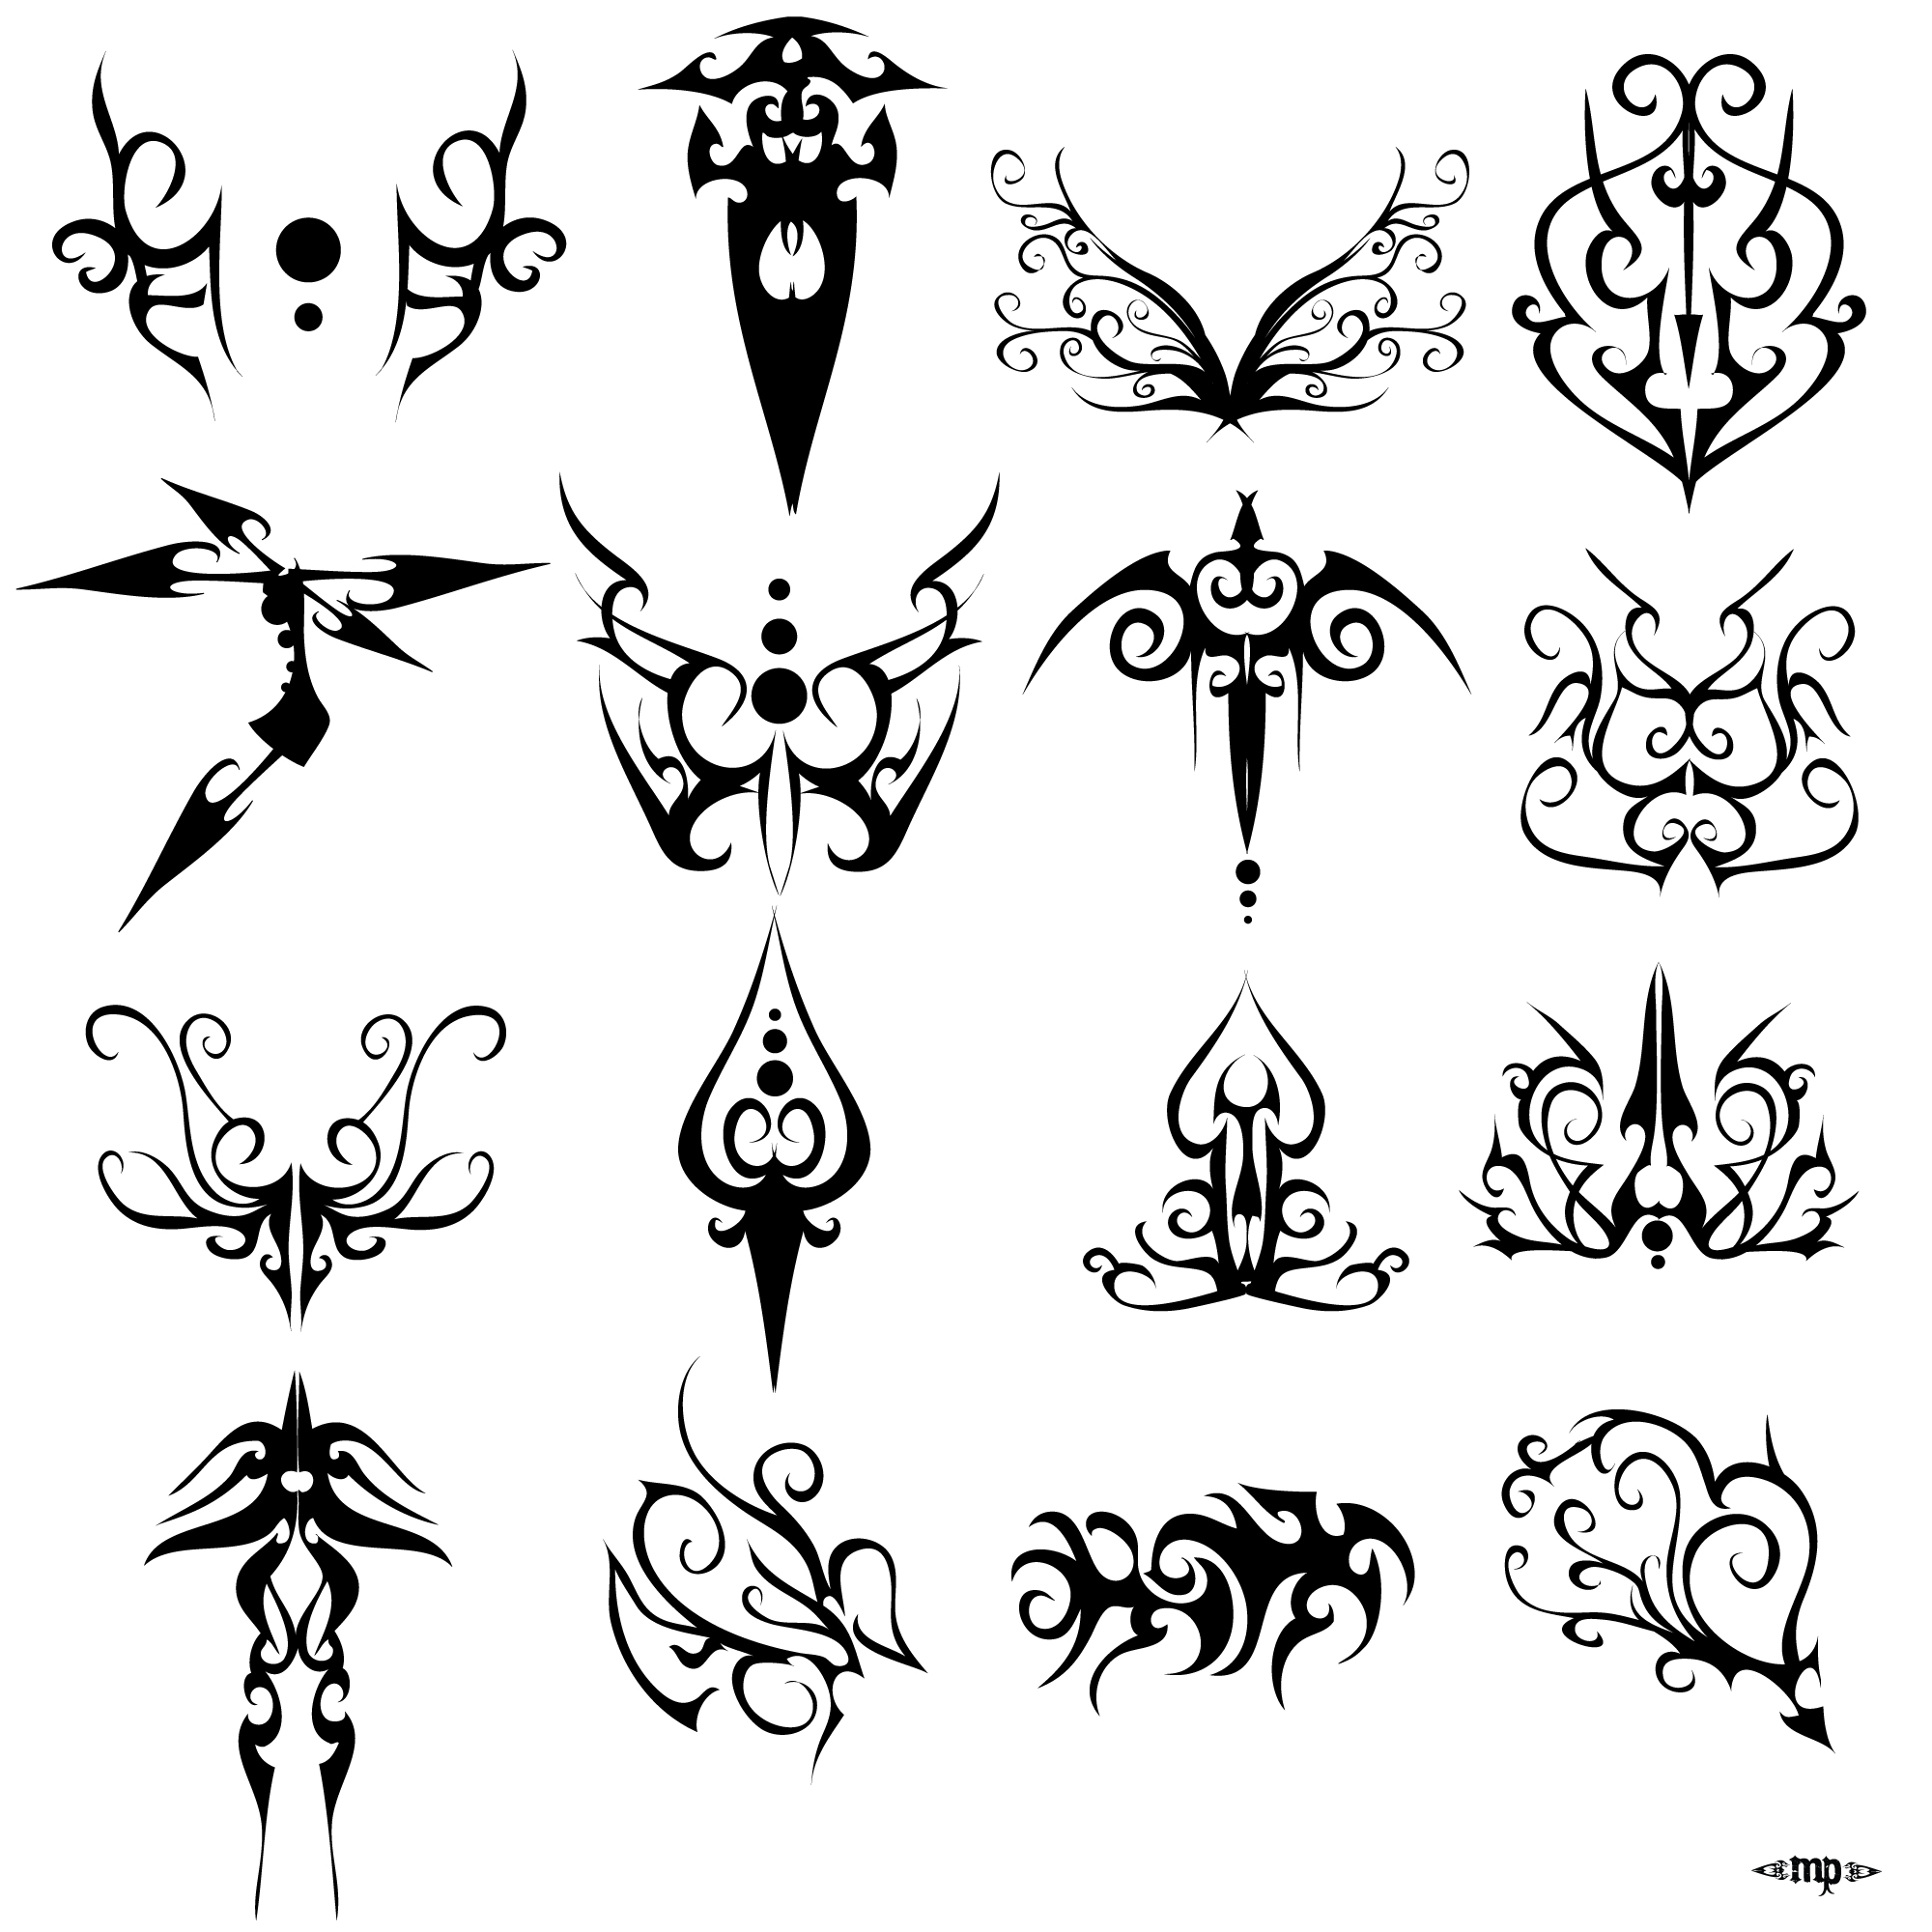 Simple Tattoo Designs To Draw For Men - Cliparts.co